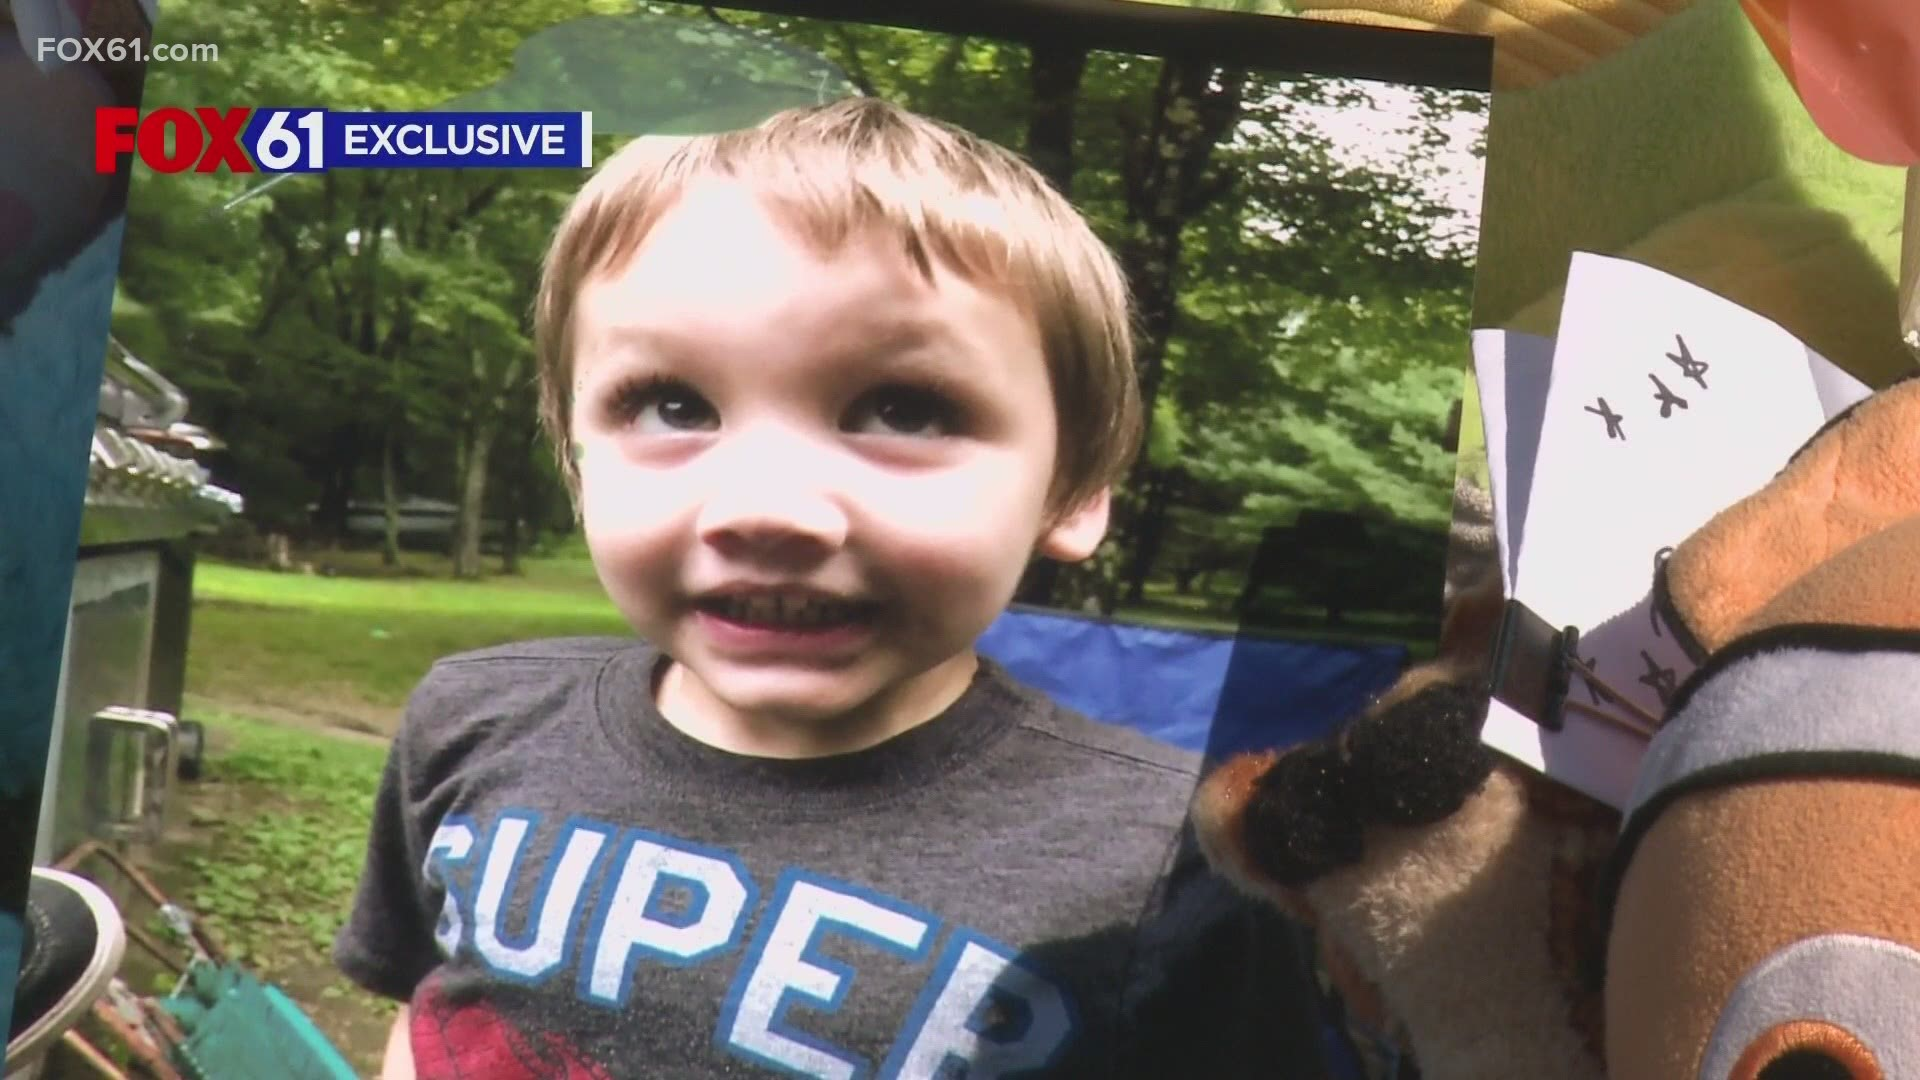 Father Of Murdered Connecticut 4 Year Old Boy Speaks Out Fox61 Com